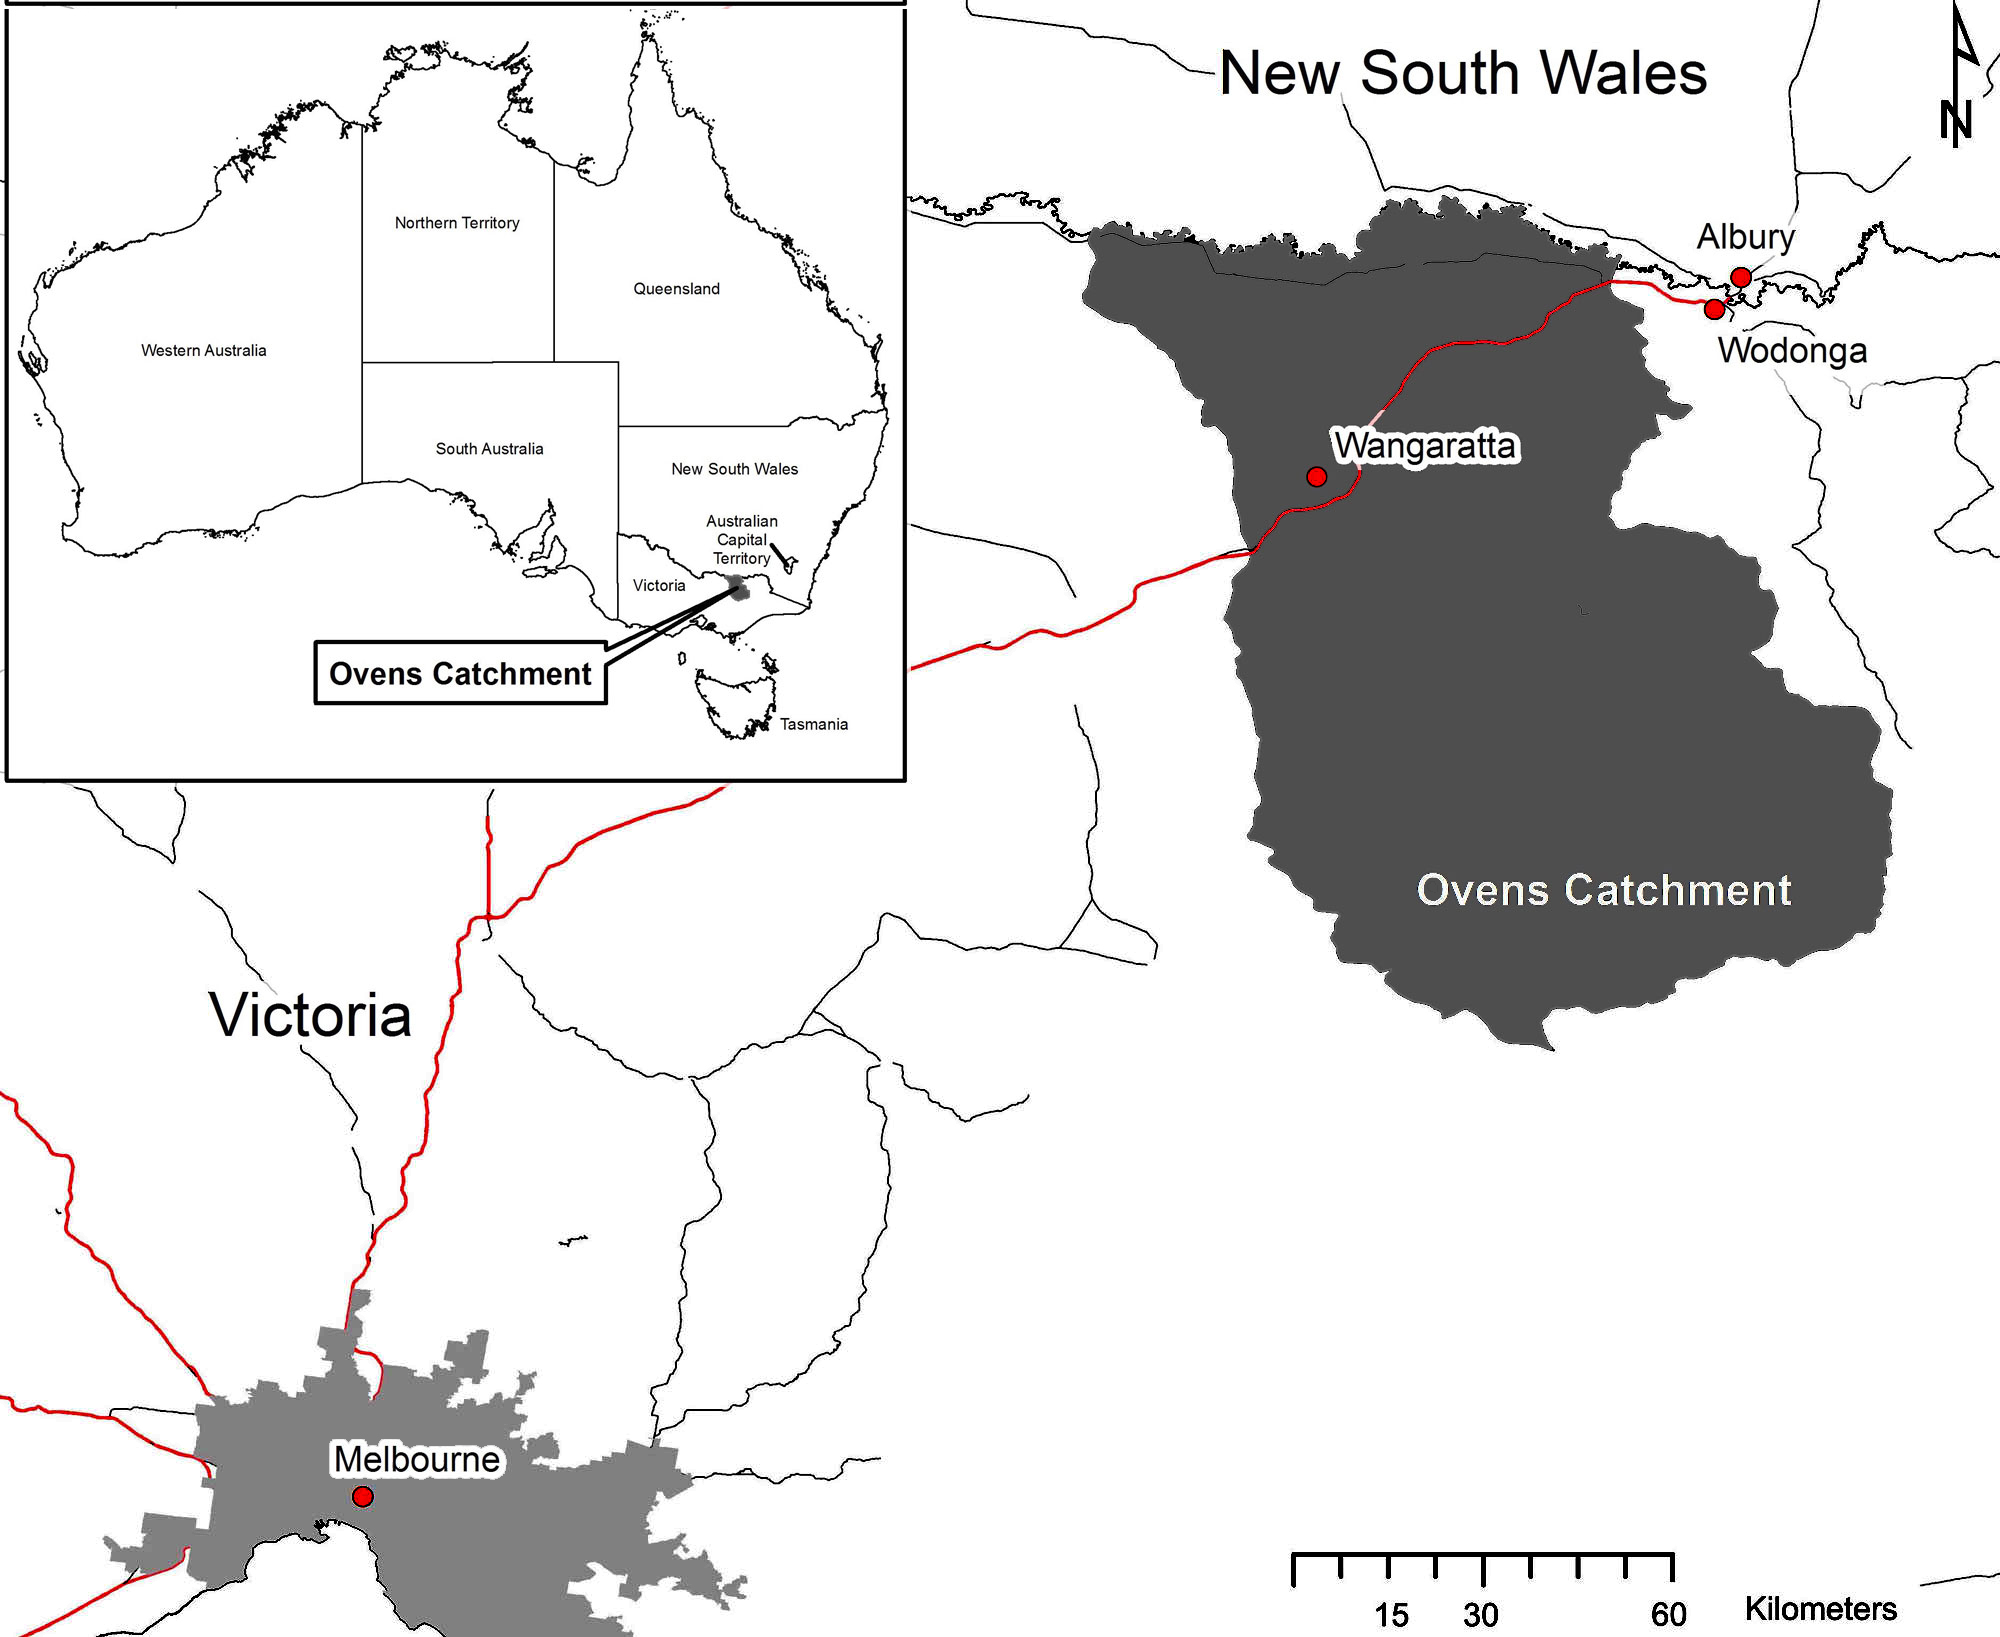 Melbourne Victoria Australia Map.Fig 2 Map Of Ovens Catchment Victoria Australia The Red Line Is